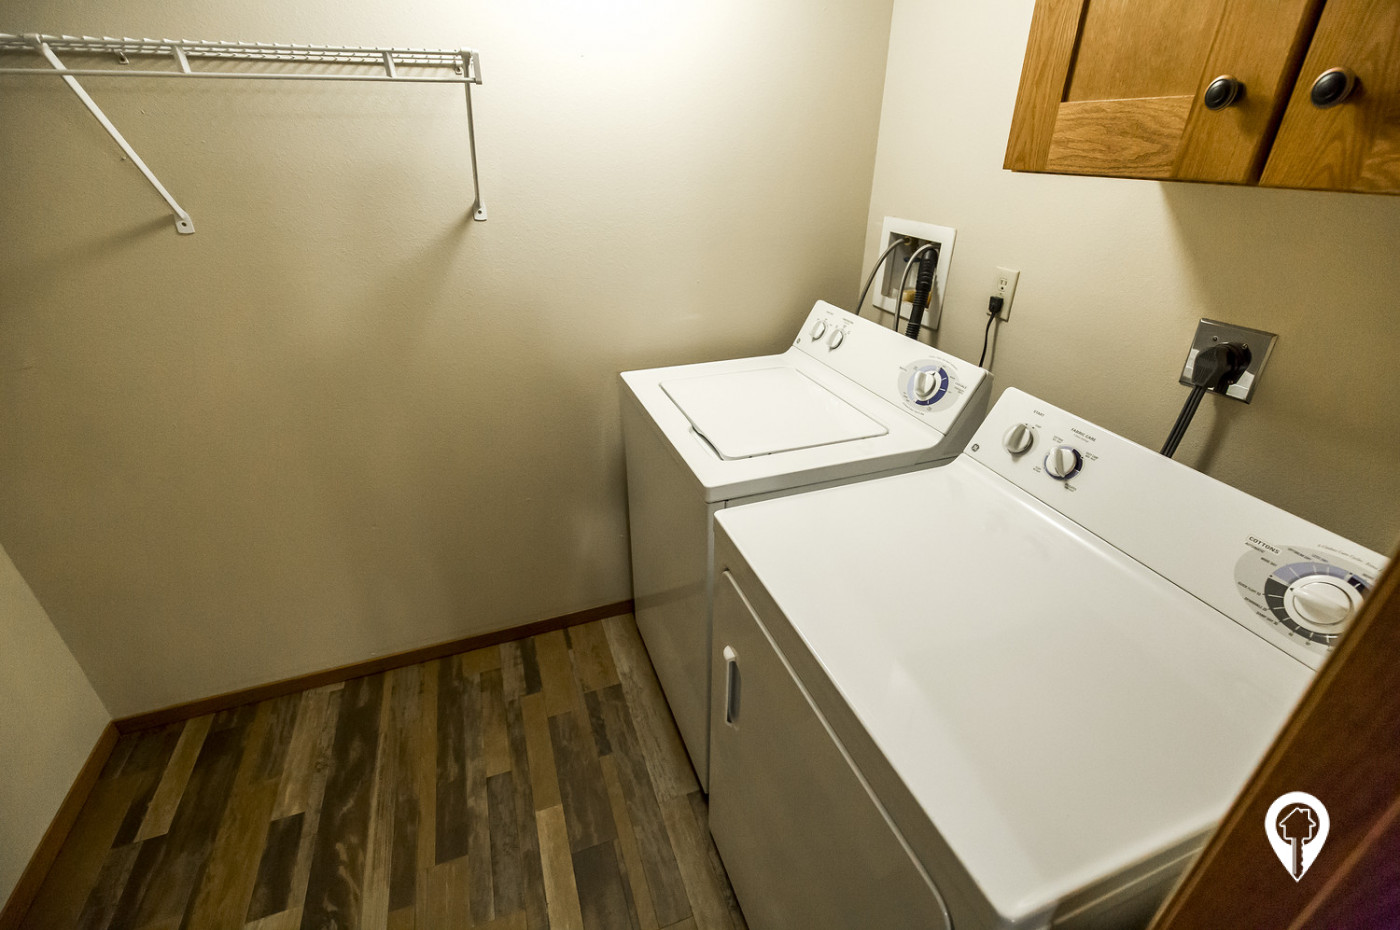 North-Pointe-Apartment-Homes-In-Home-Washer-Dryers